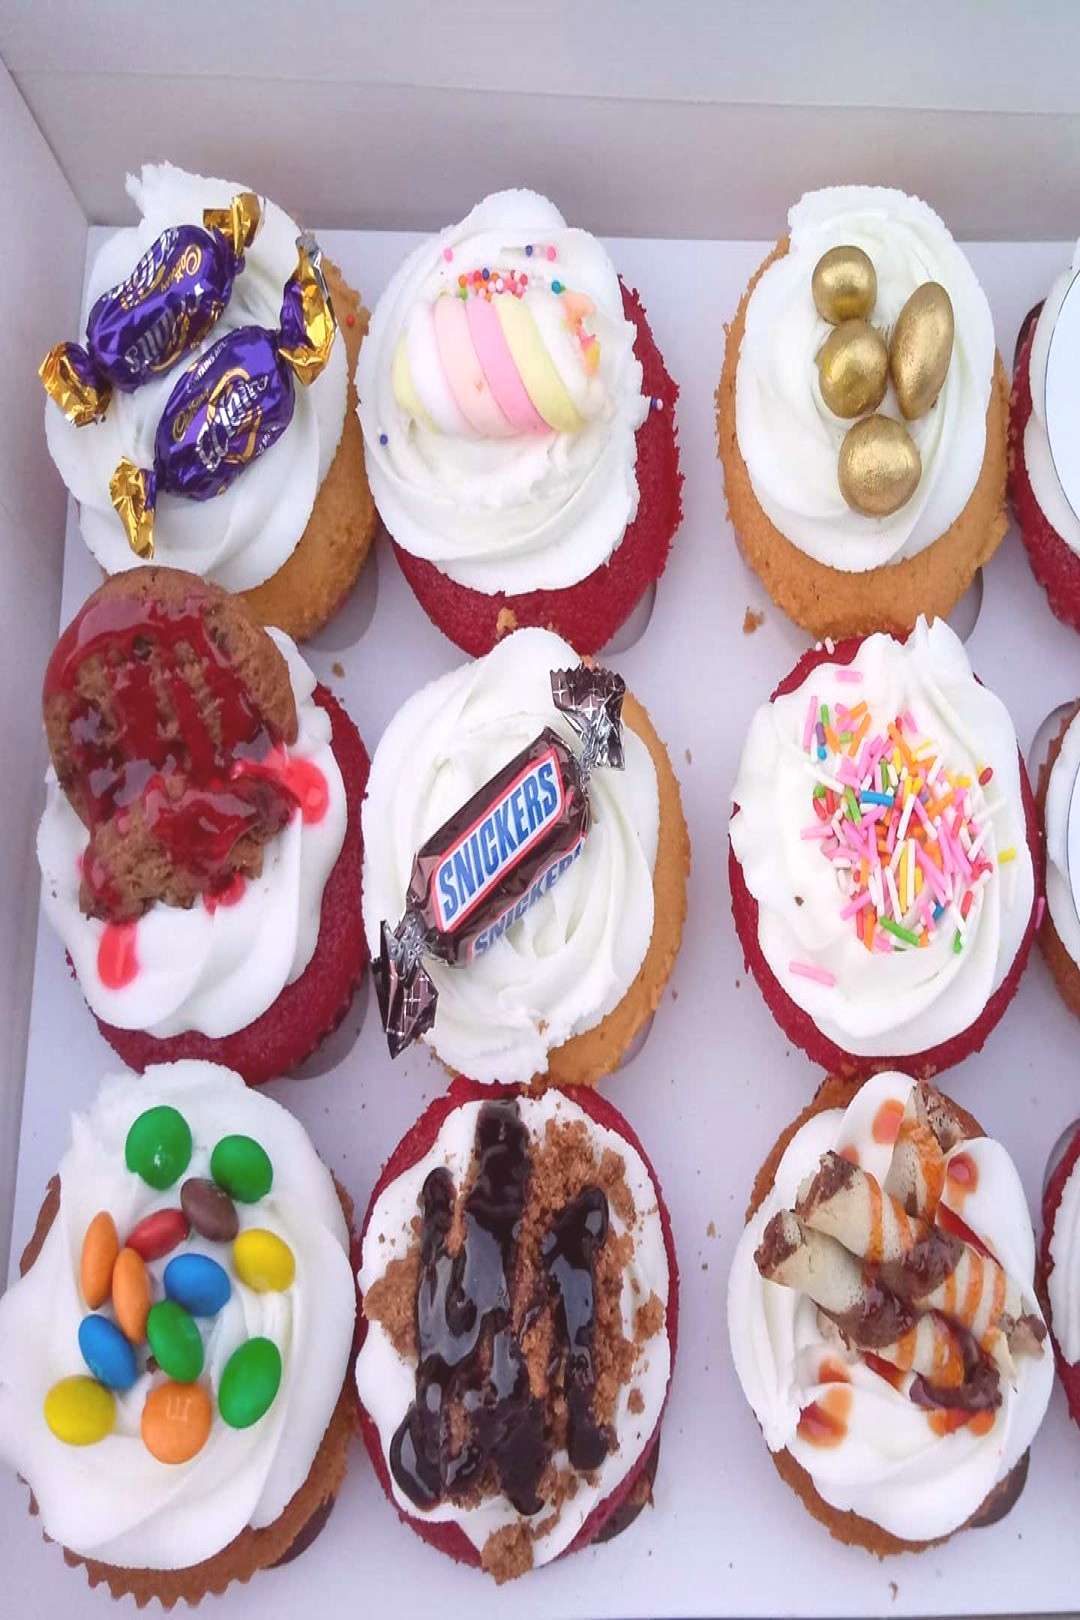 Variety is the spice of life make a statement with zerah cupcakes